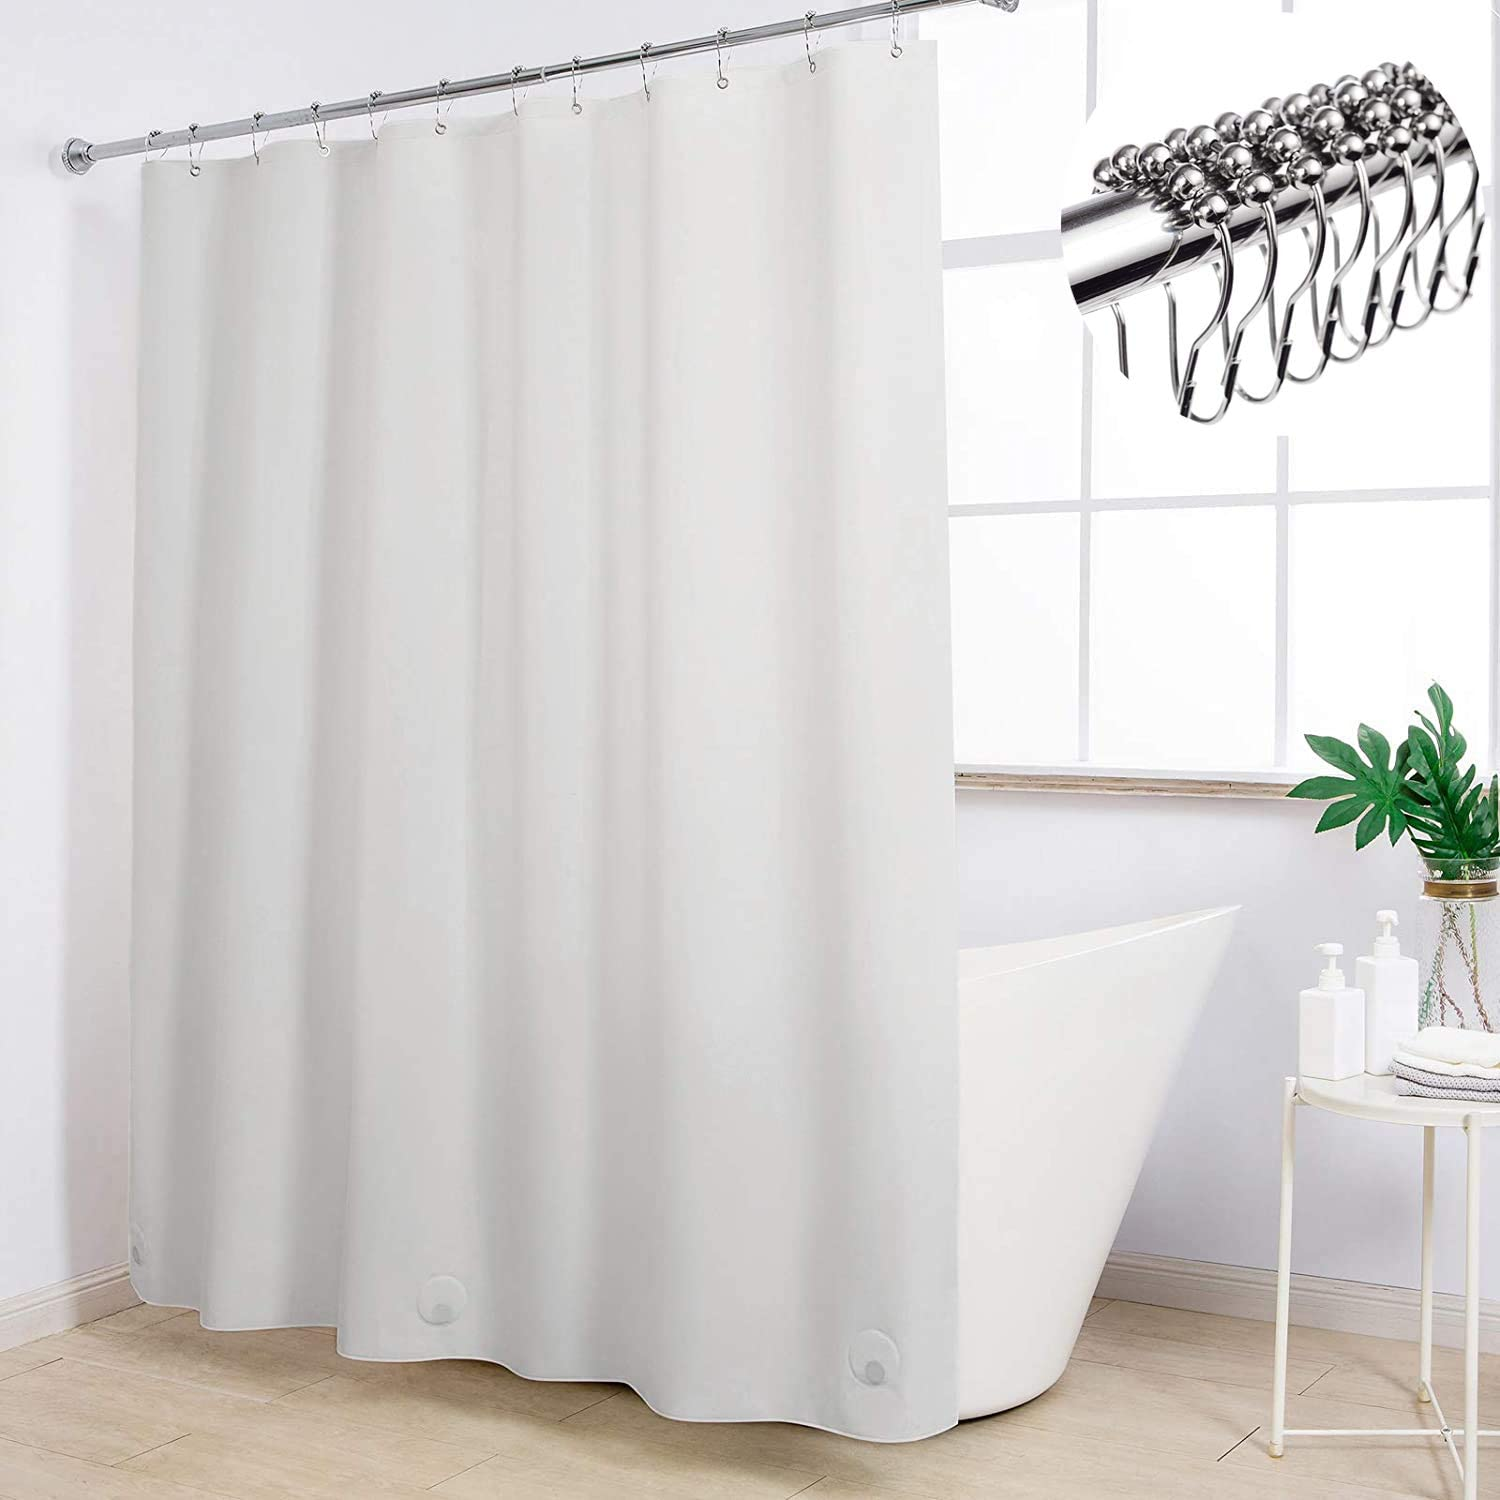 Ryhpez White Shower Topics on TV Curtain Liner Hooks - Metal Waterproof SEAL limited product with